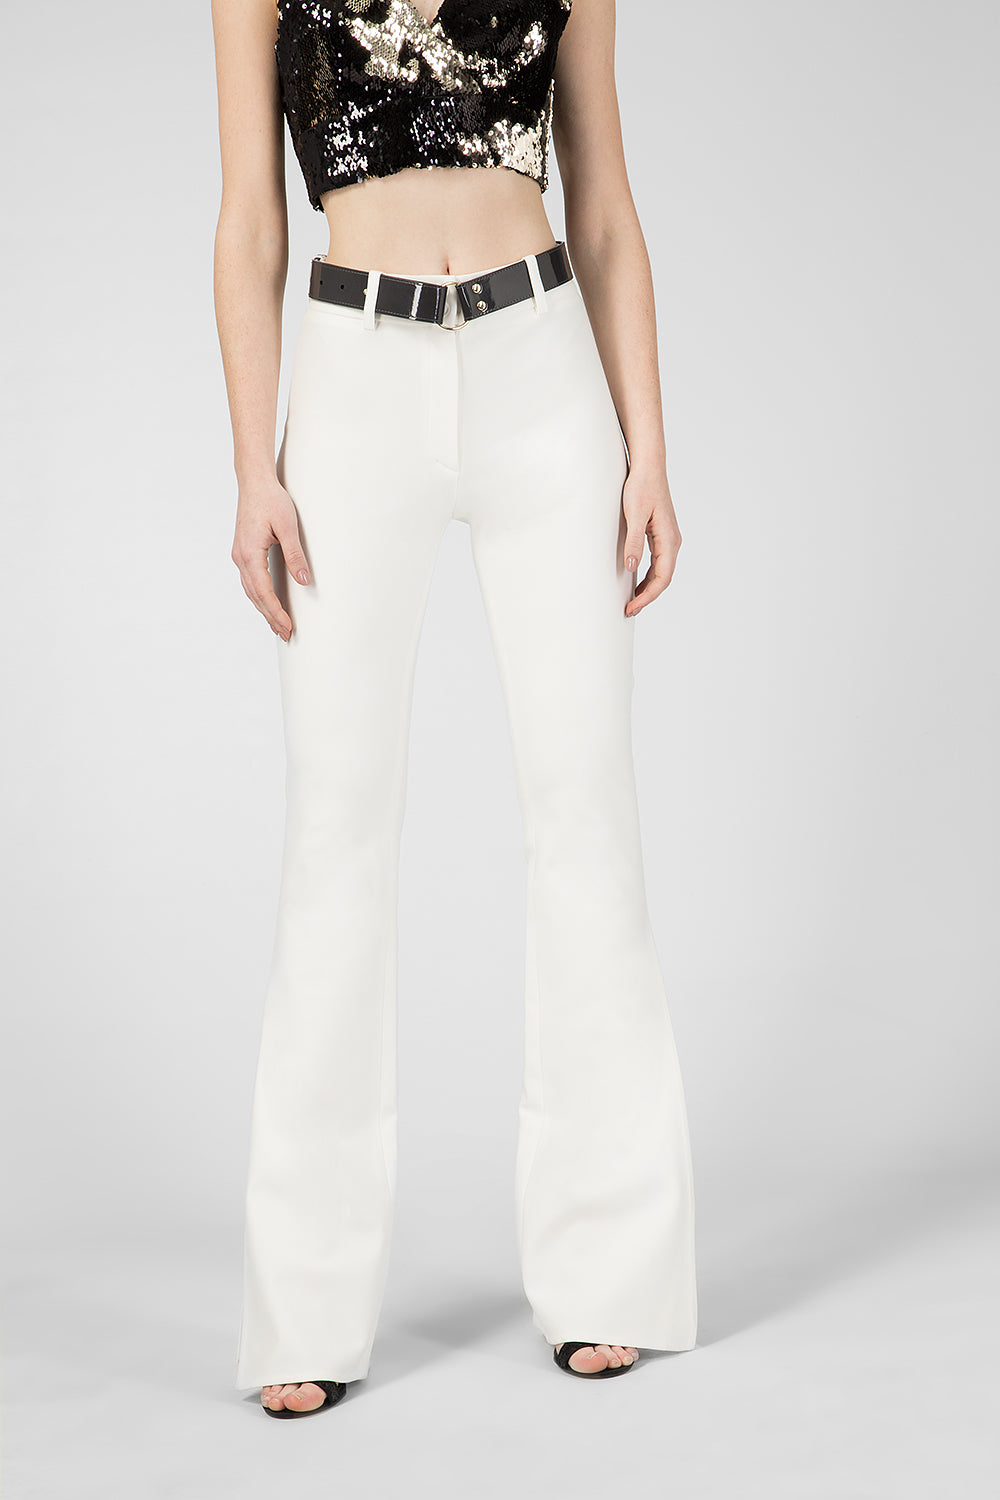 White knitted trousers